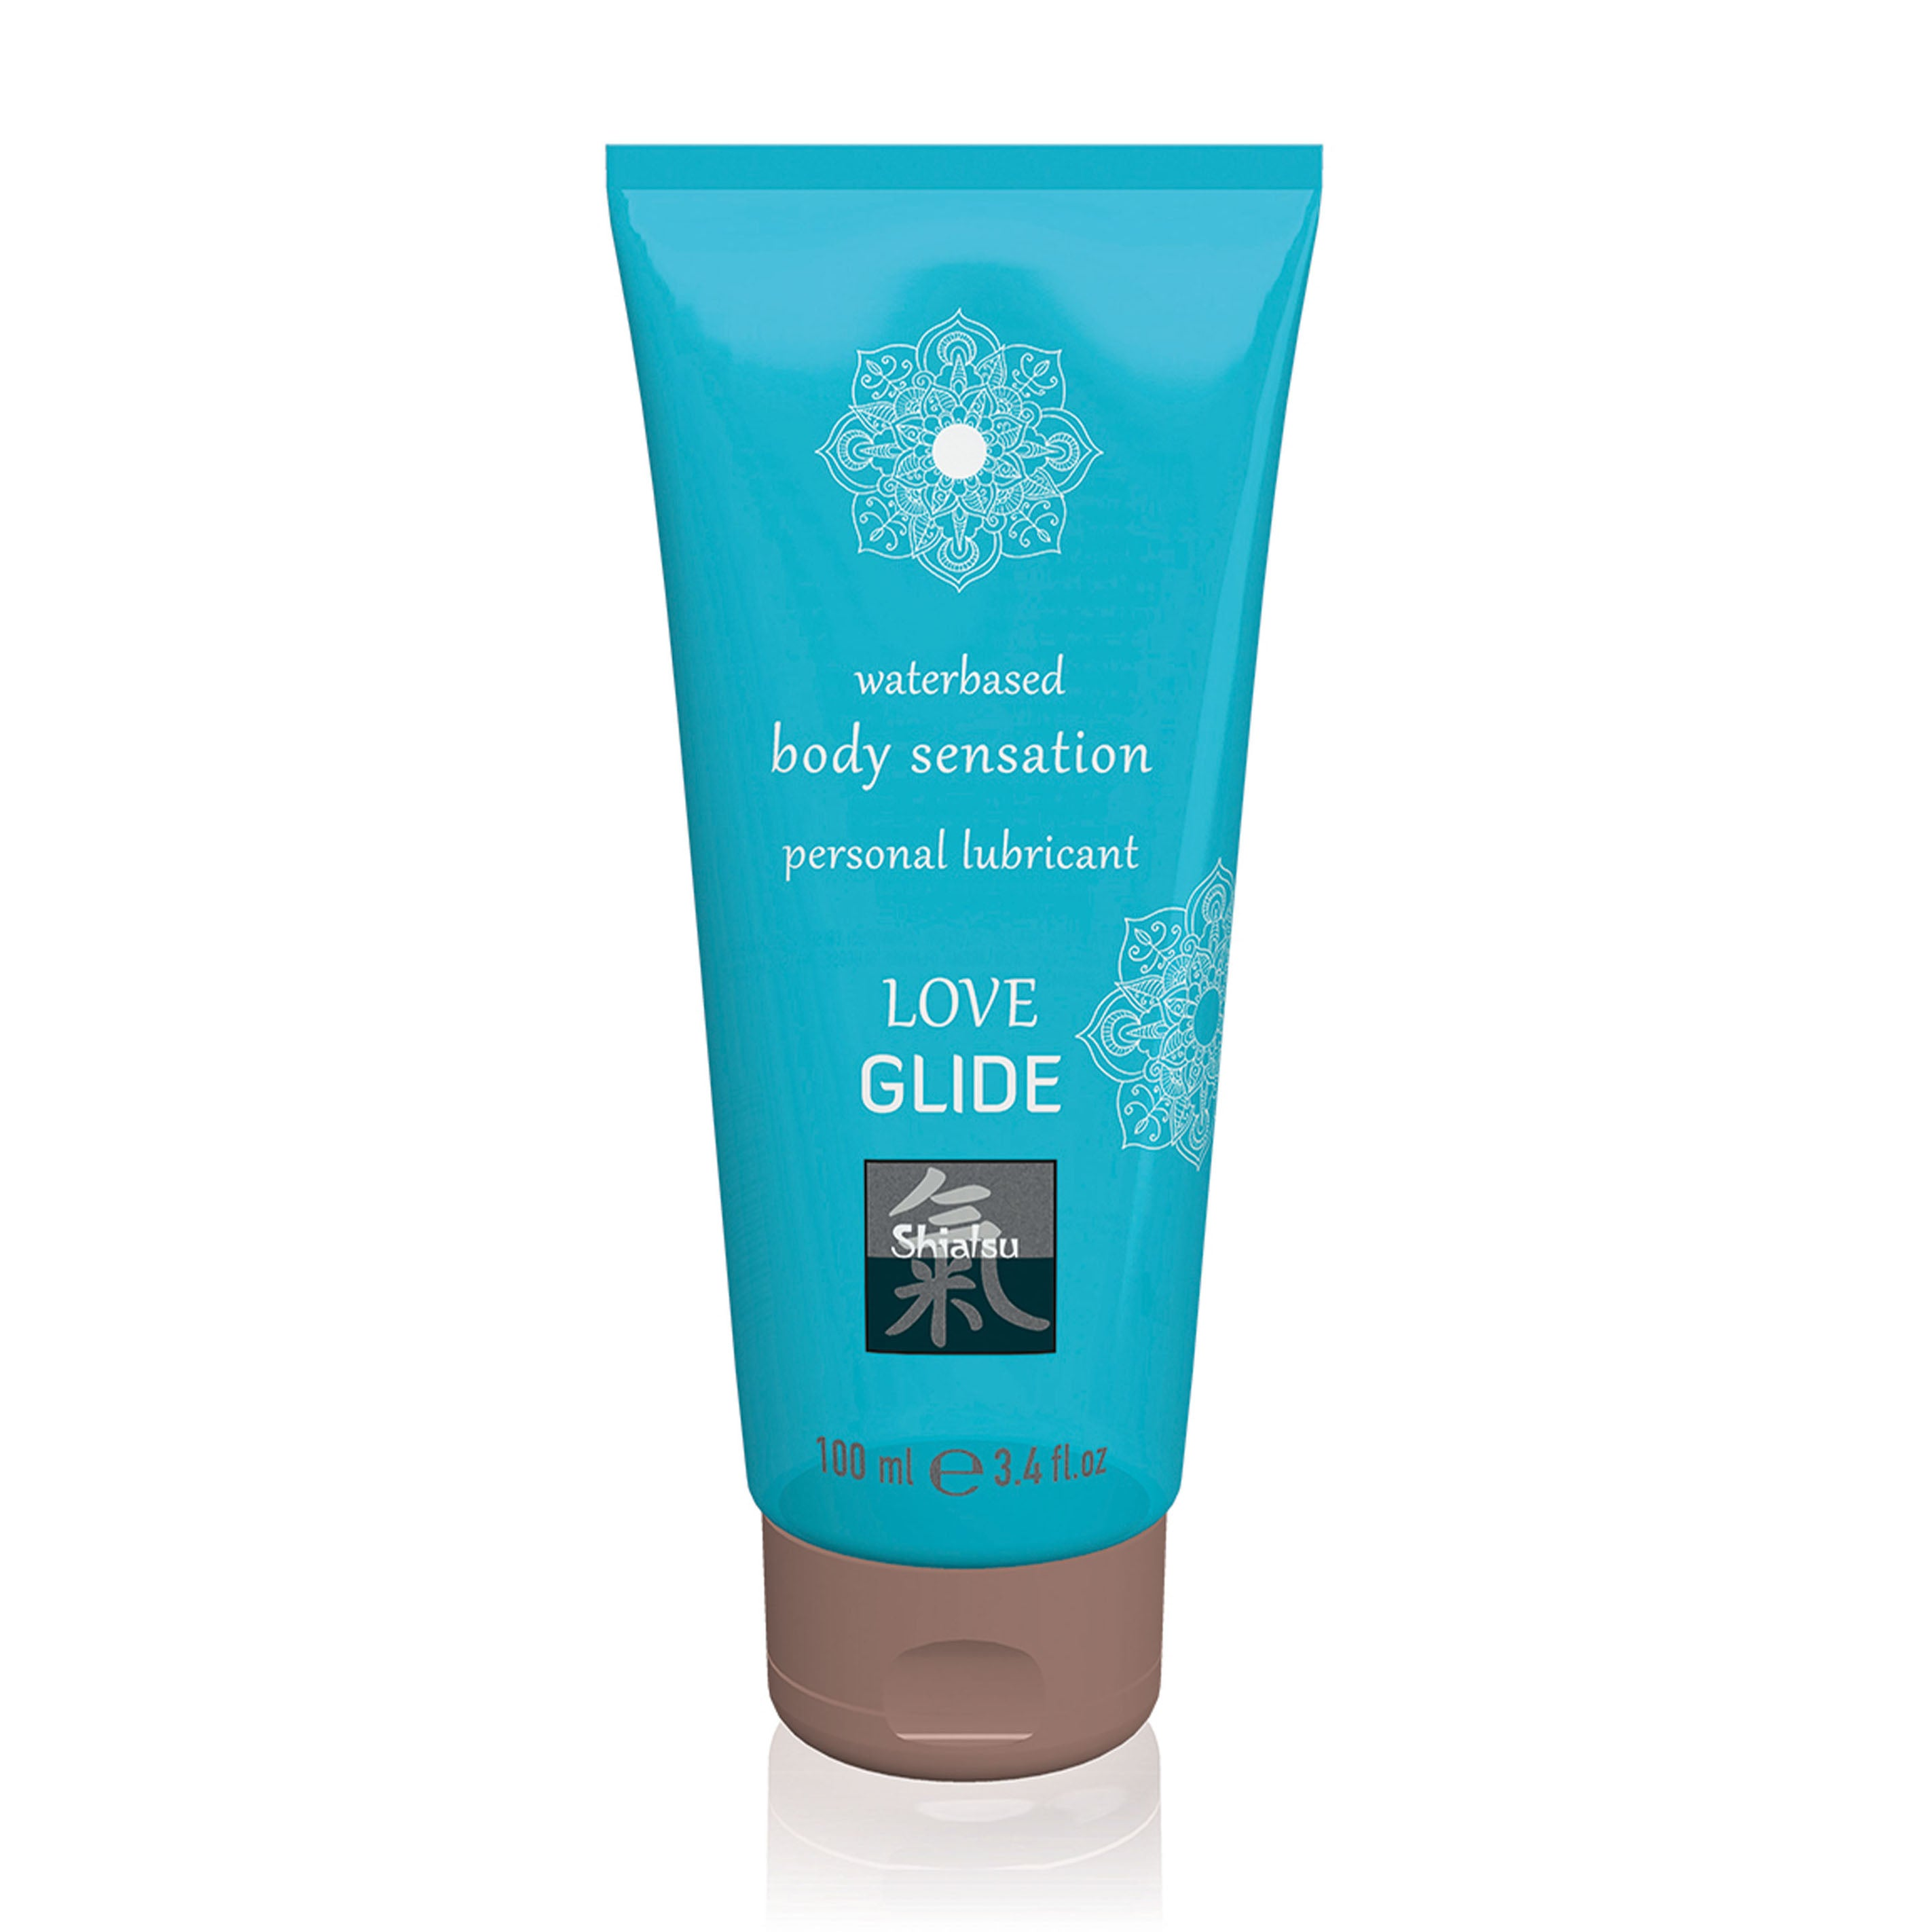 Shiatsu Love Glide WaterBased Personal Lubricant 100ml > Relaxation Zone > Lubricants and Oils 75ml, Both, Lubricants and Oils, NEWLY-IMPORTED - So Luxe Lingerie